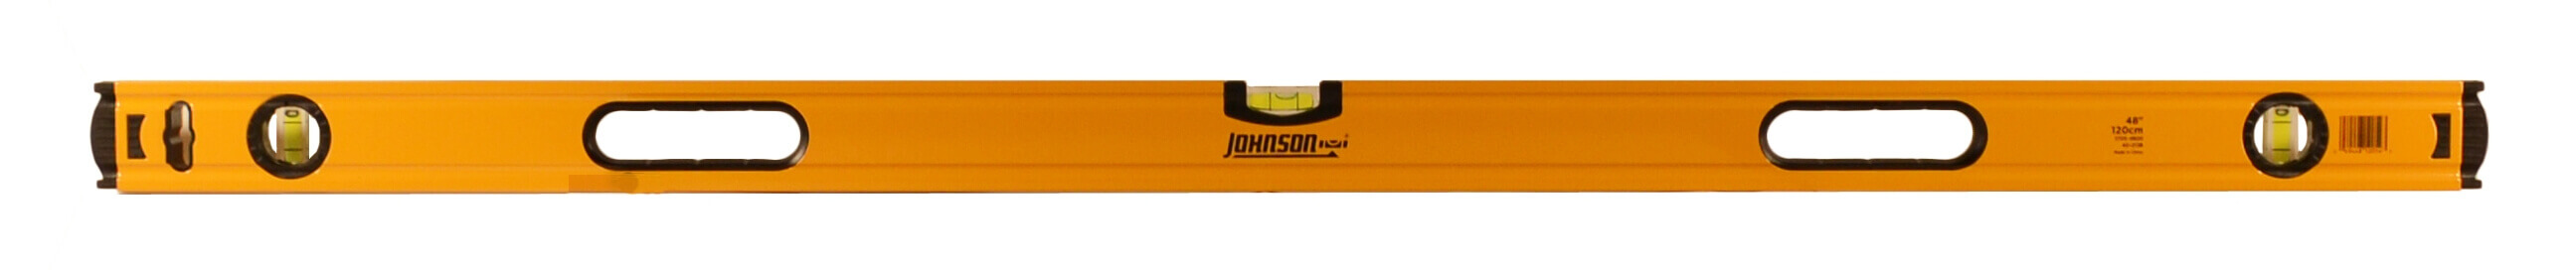 Johnson Level 48 Aluminum Box Beam Level 1735-4800